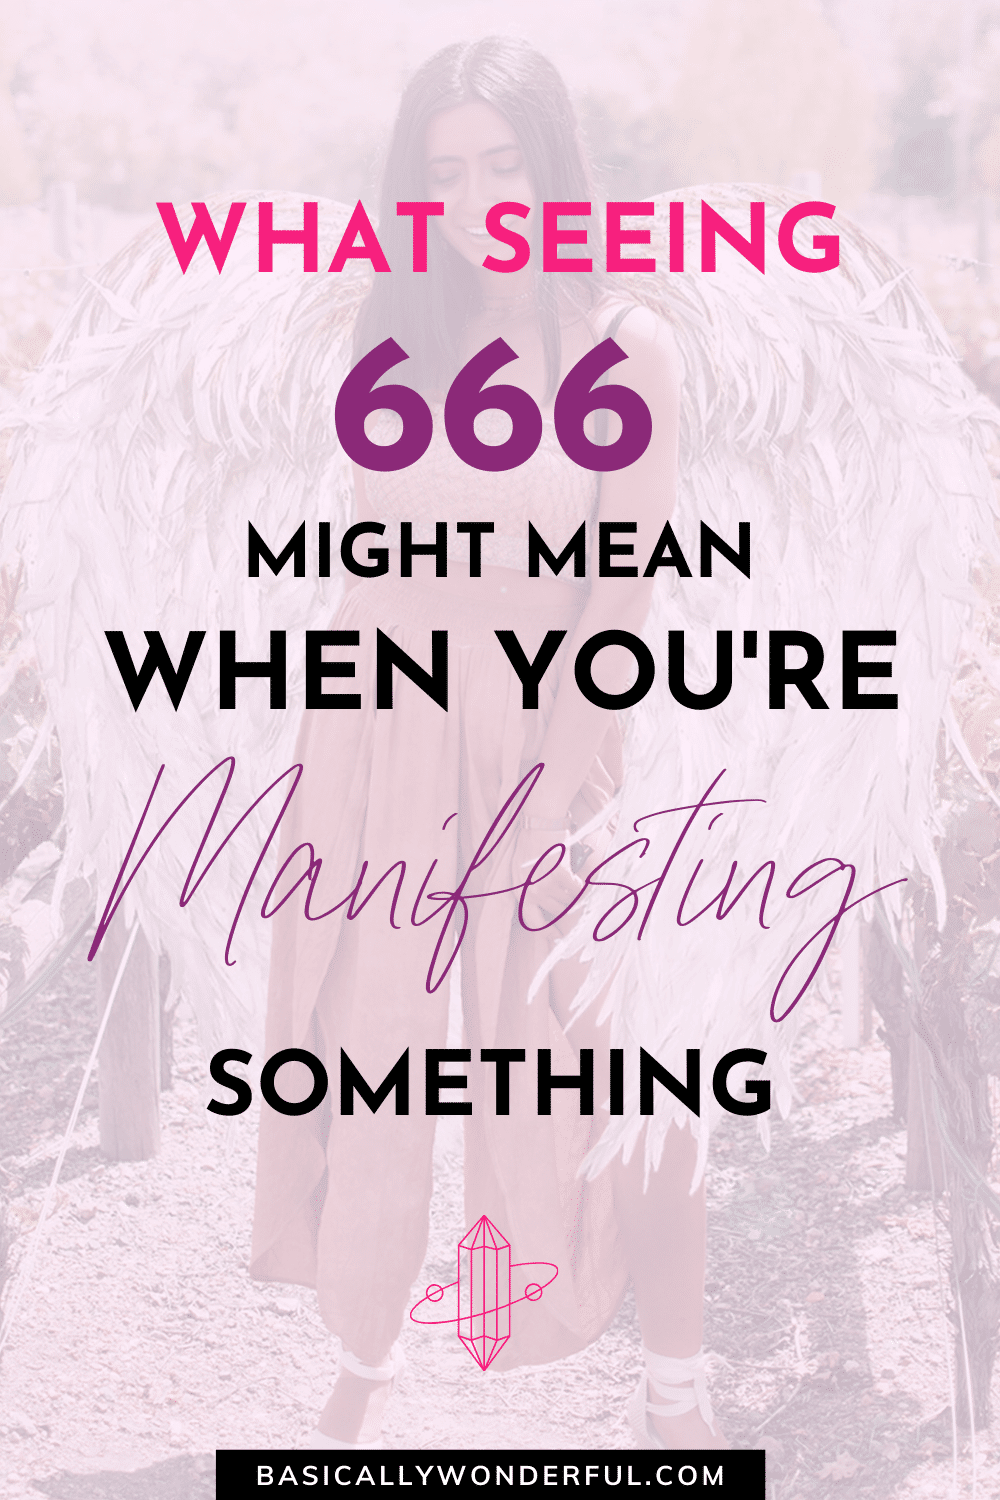 666 meaning law of attraction